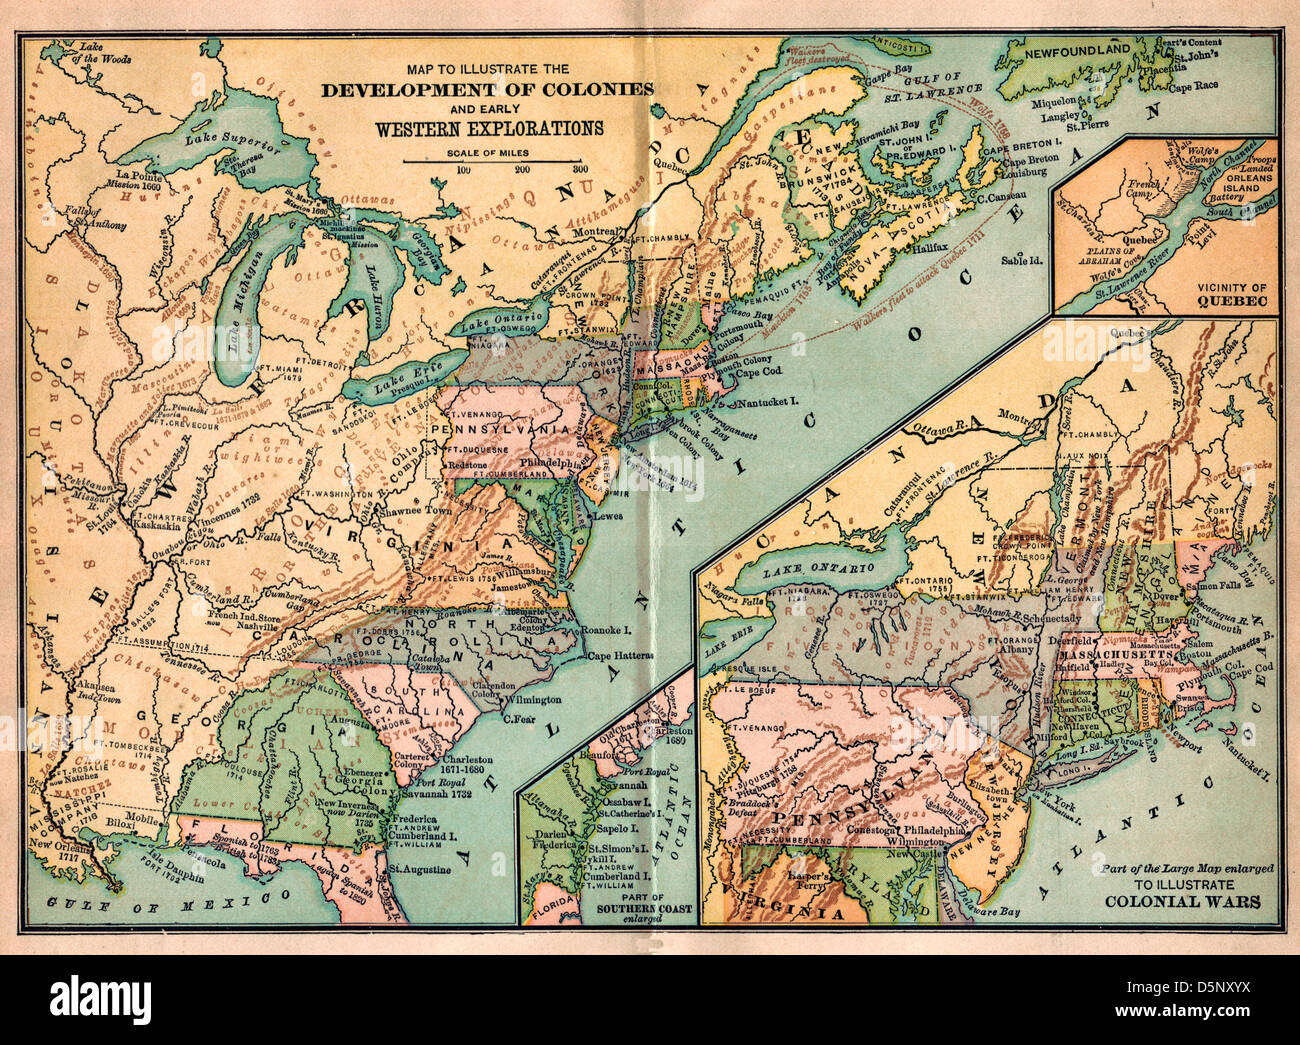 Vintage map of United States America - Development of Colonies and Western Exploration and Colonial Wars - Stock Image